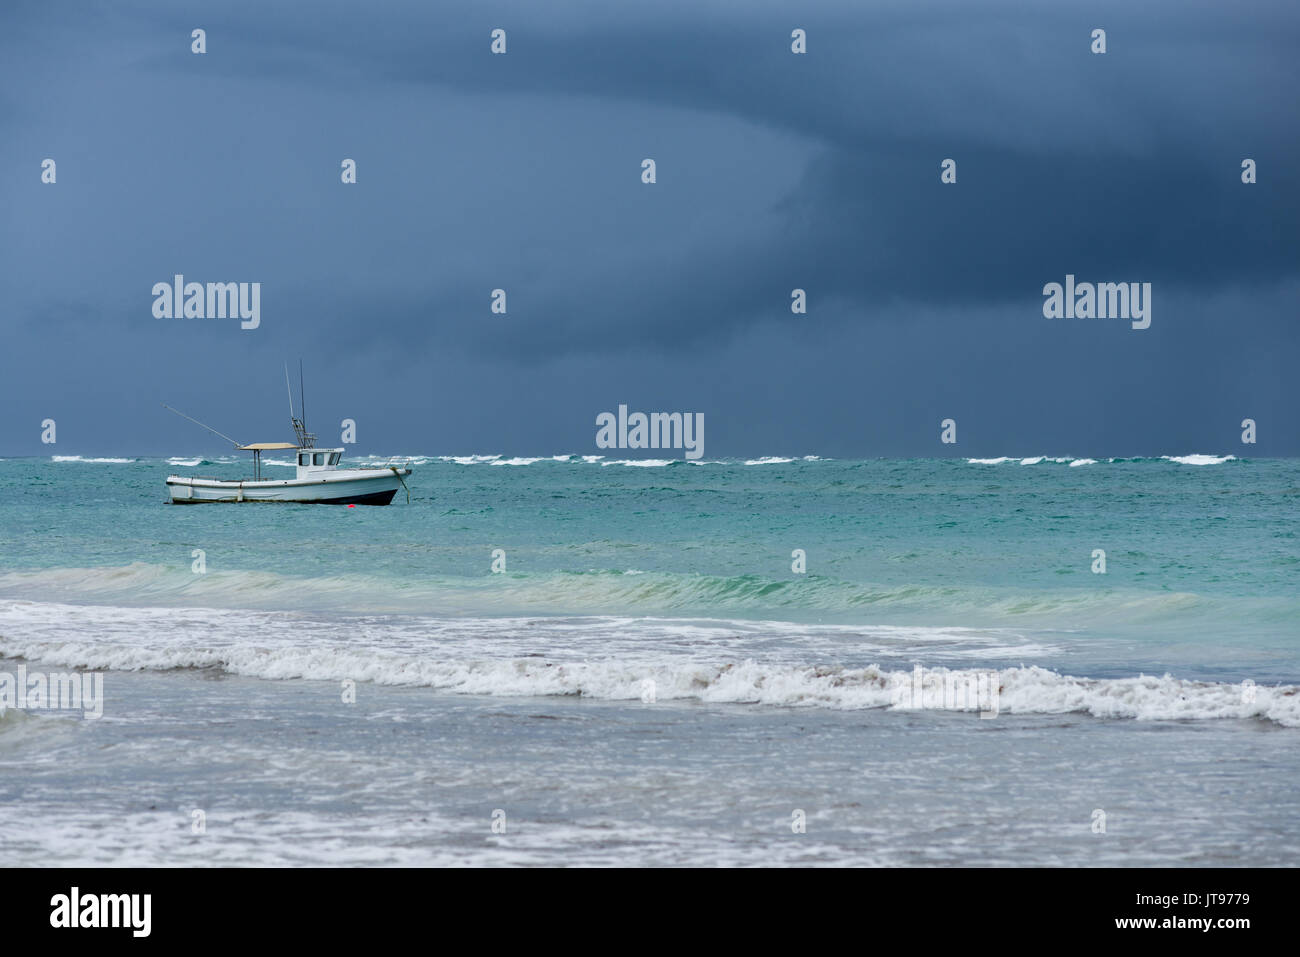 Fishing boat anchored by shore with rain cloud in background, Diani, Kenya - Stock Image